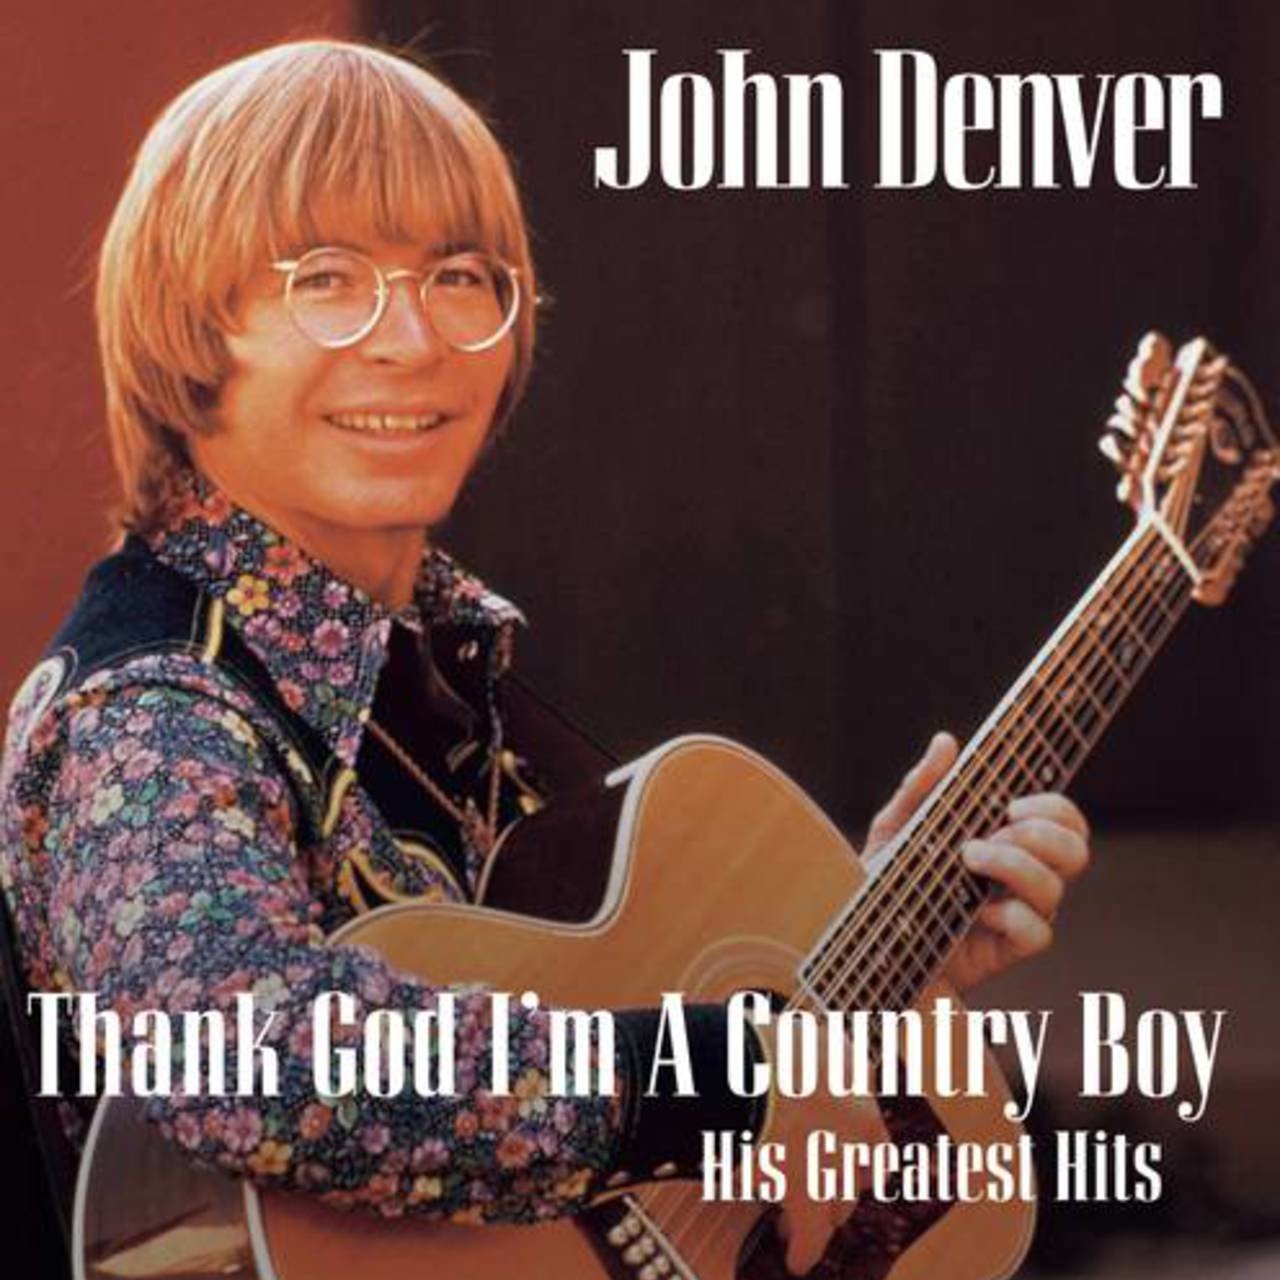 Tidal Listen To John Denver On Tidal